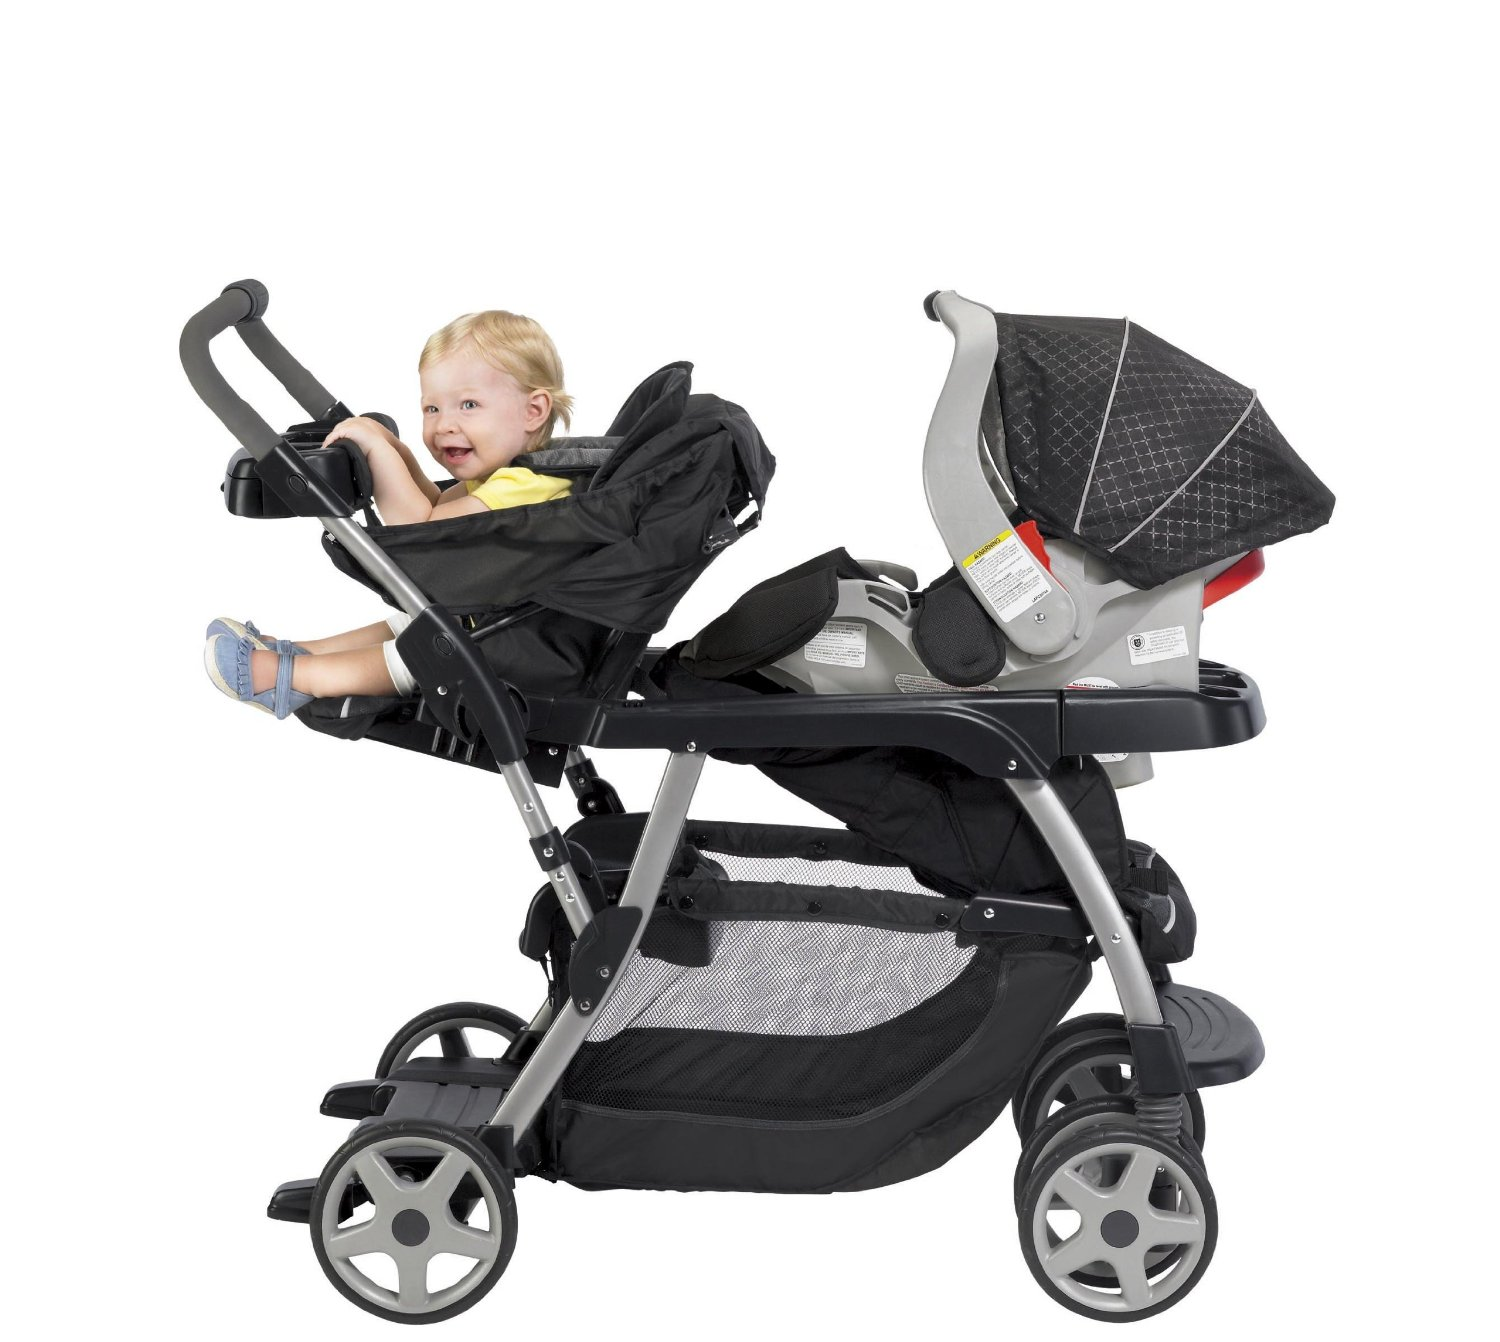 Graco Ready to Grow Stroller Review